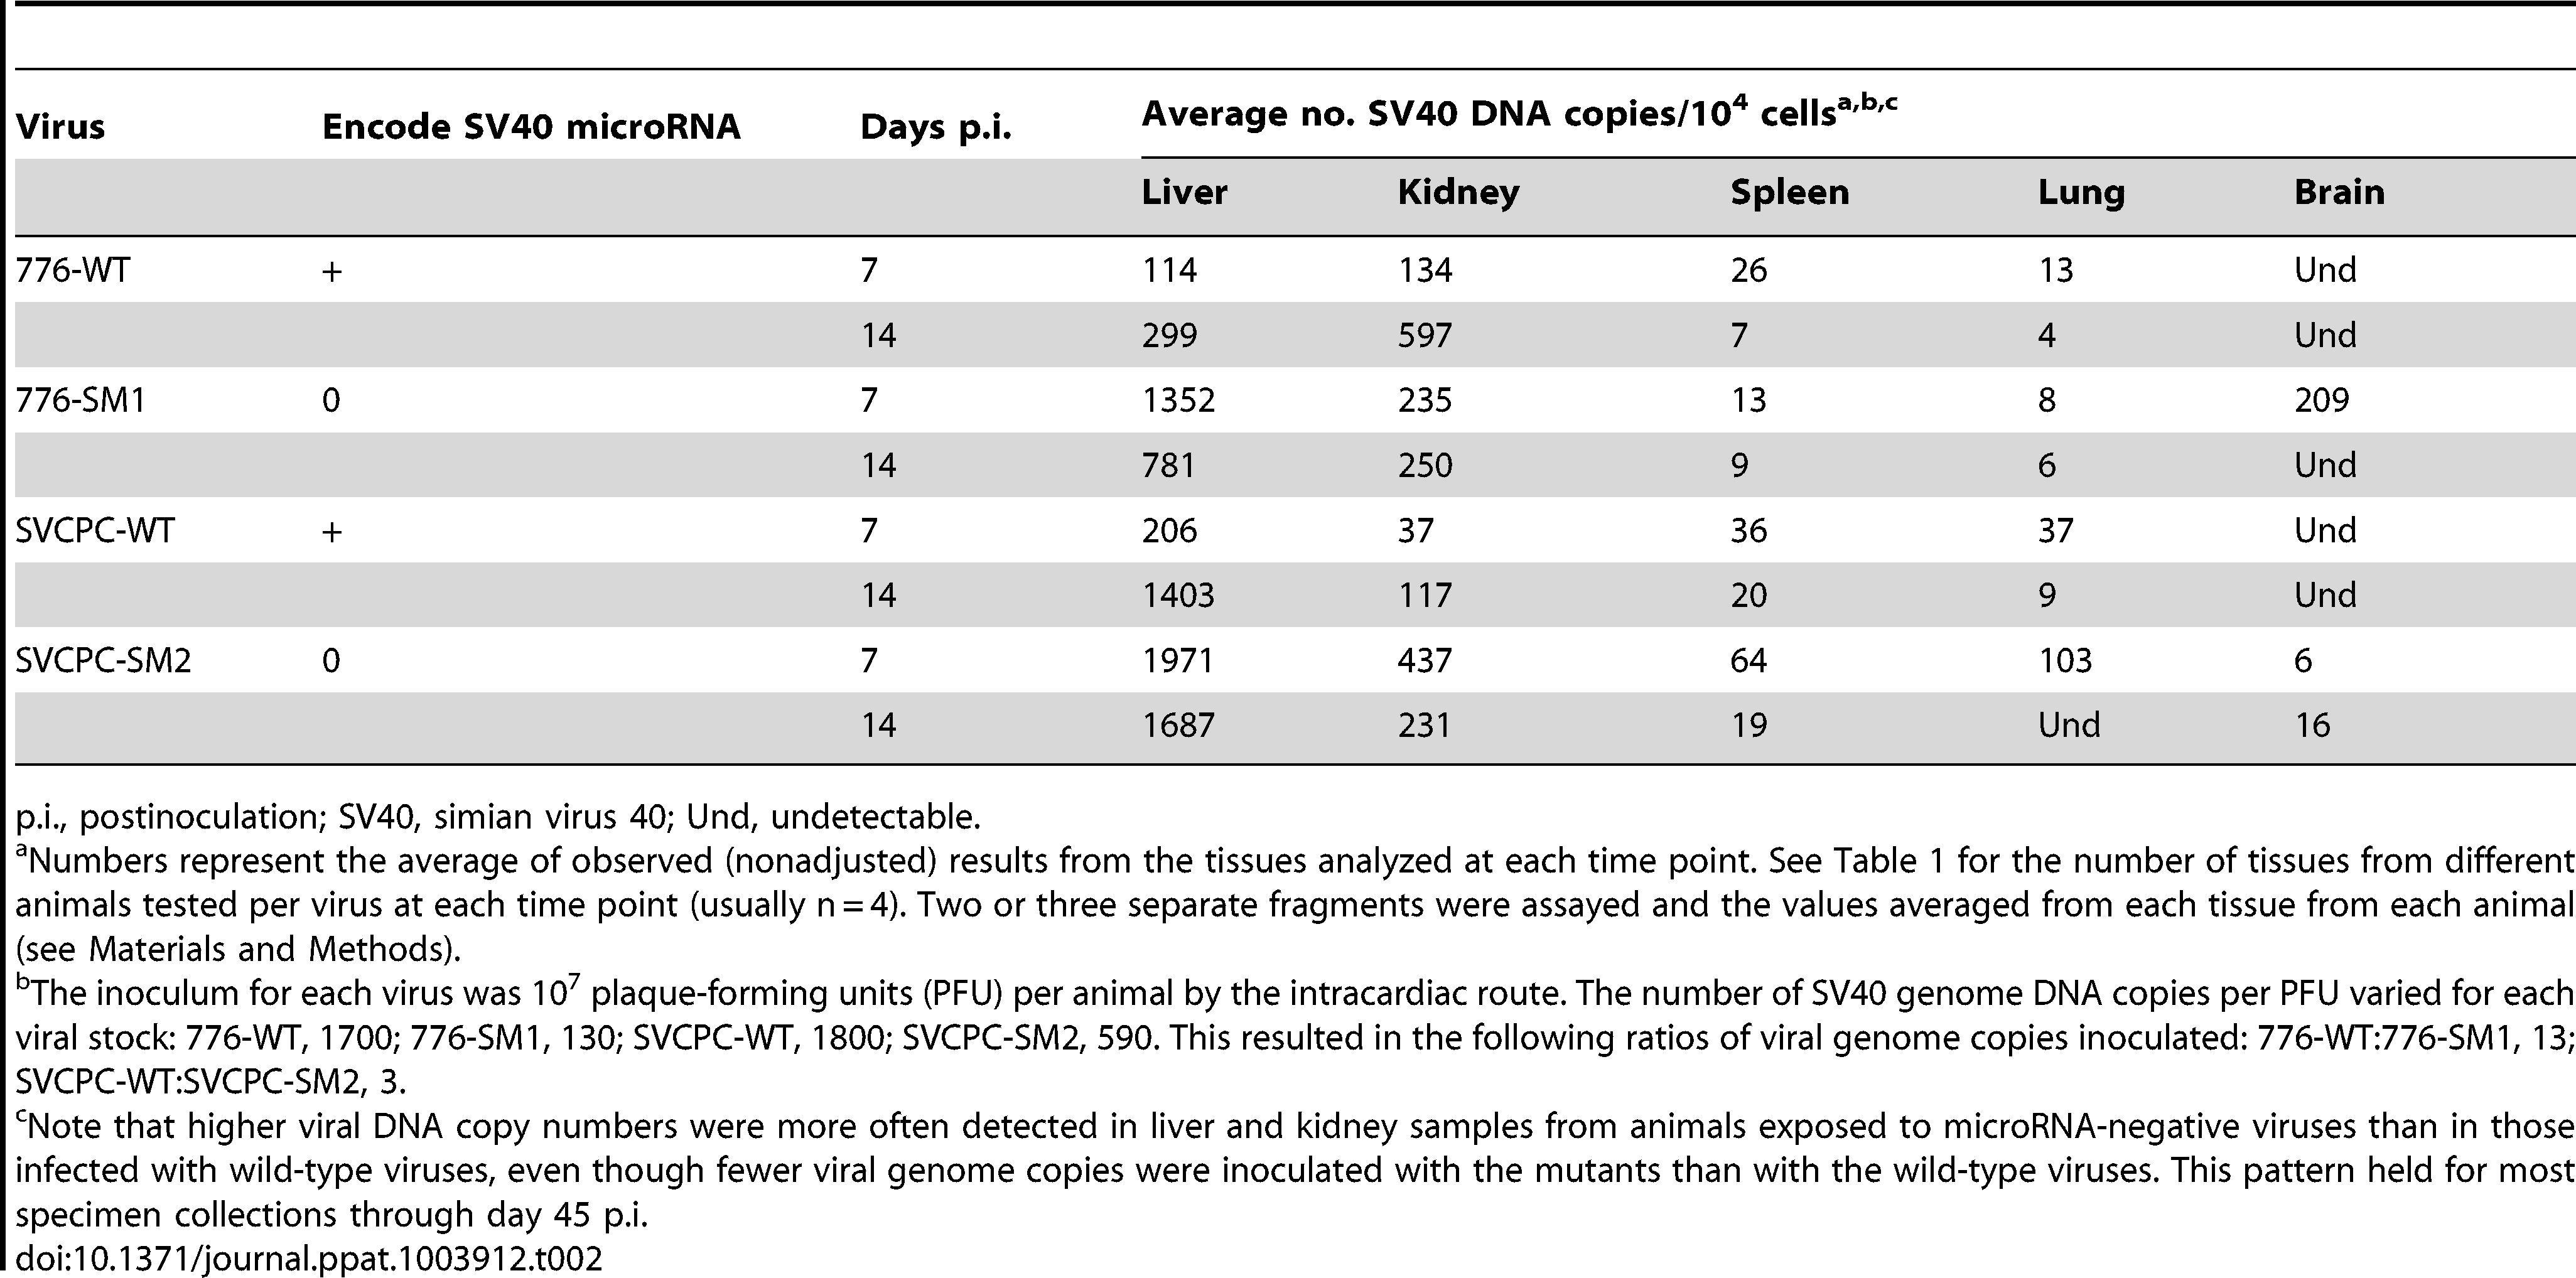 Viral loads in different hamster tissues during early stages of infection by SV40.